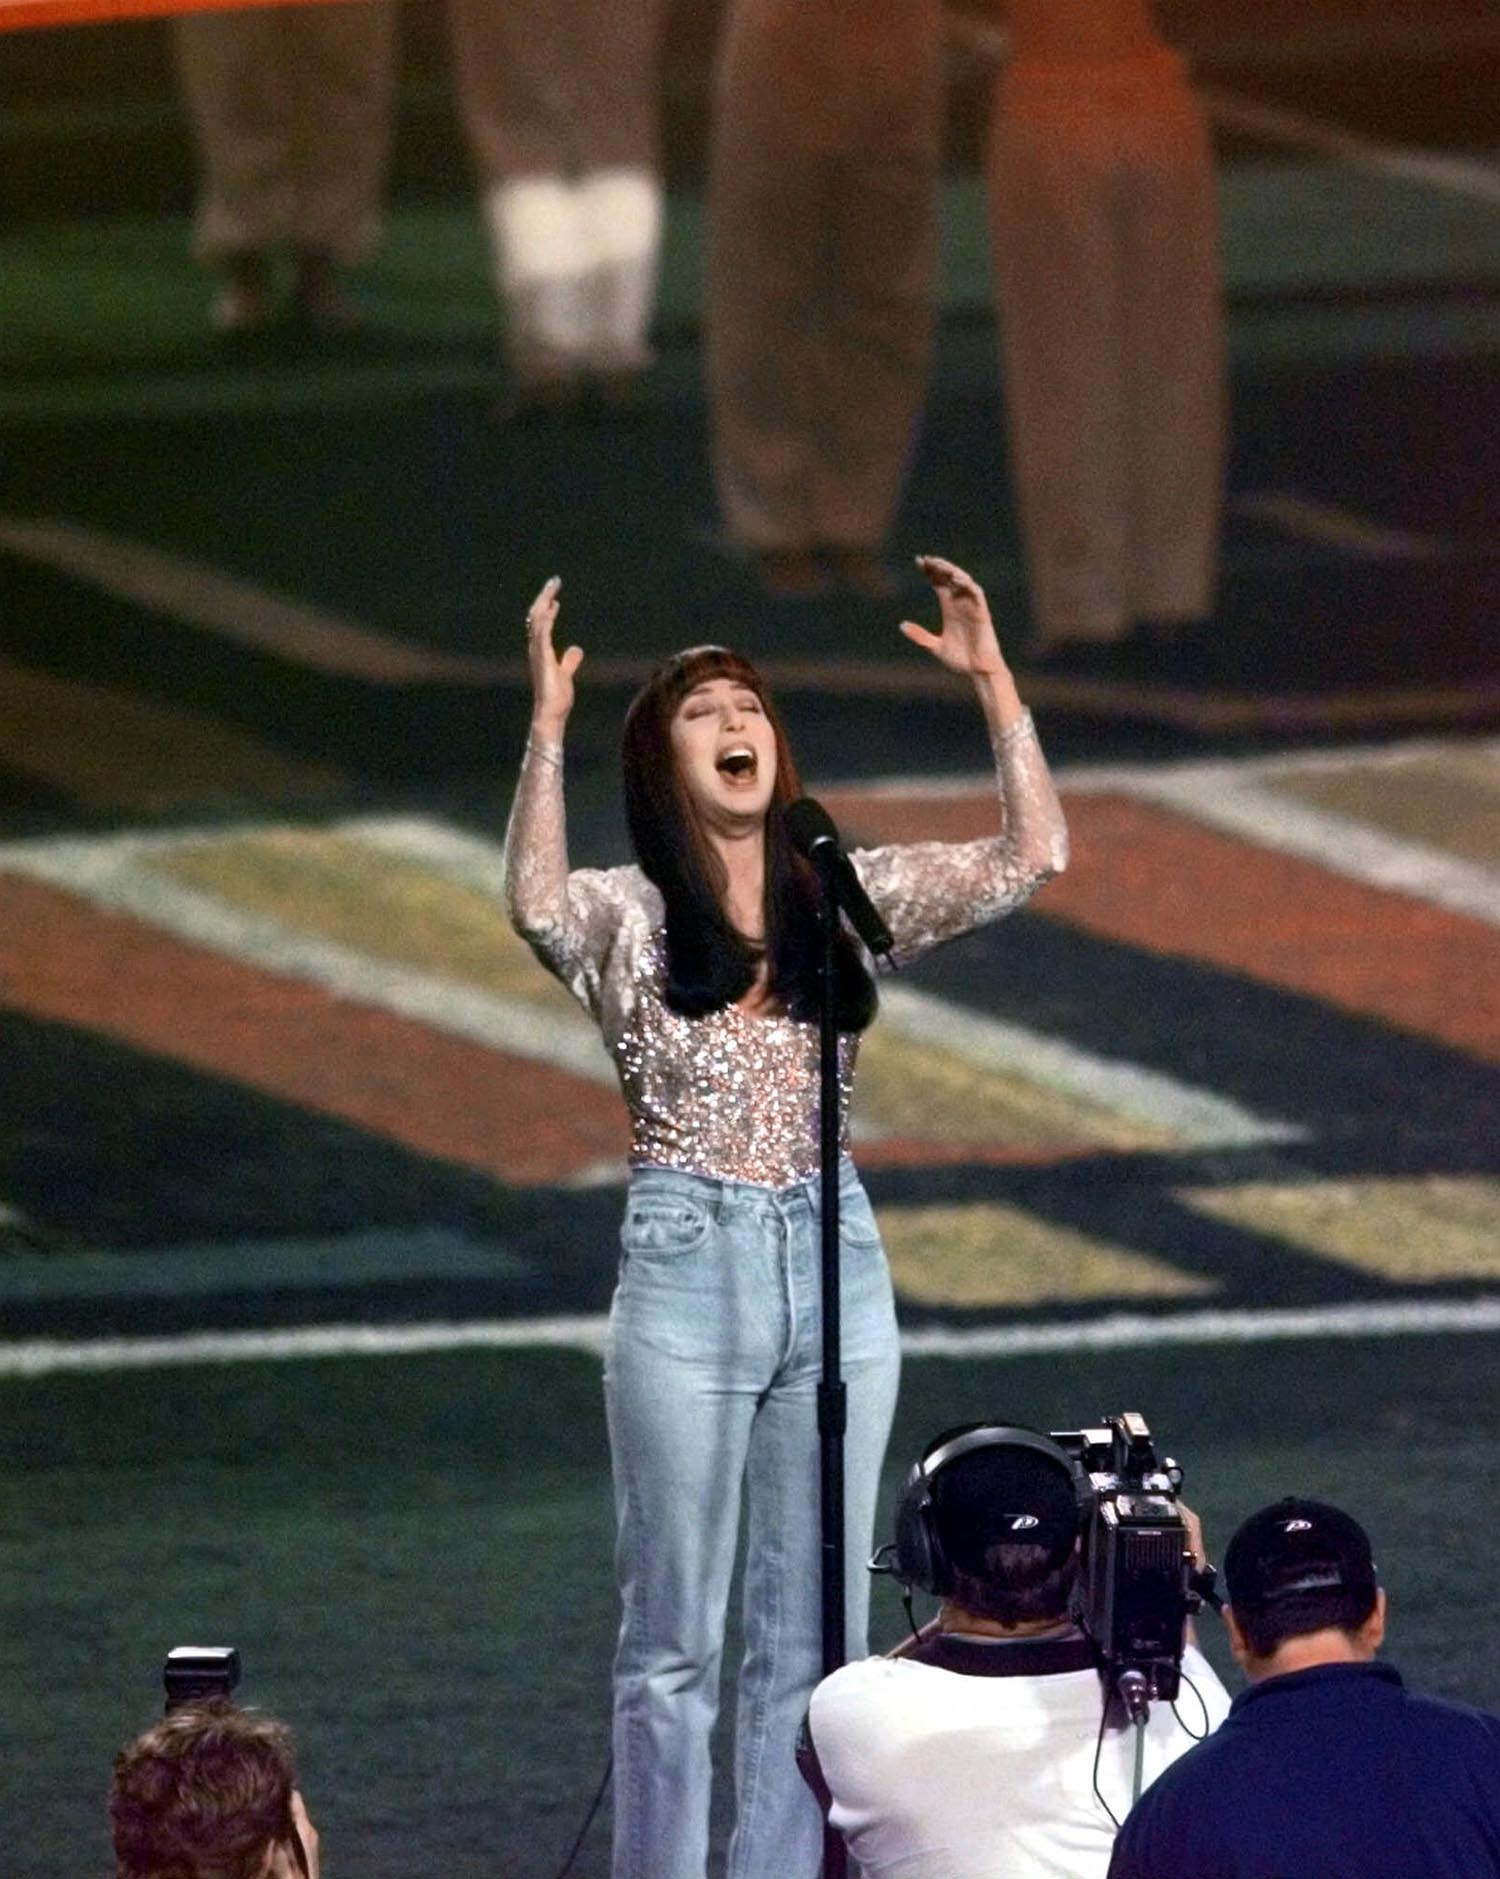 "<div class=""meta image-caption""><div class=""origin-logo origin-image ap""><span>AP</span></div><span class=""caption-text"">1999: Cher performs the National Athem before the start of Super Bowl XXXIII in Miami, Sunday, Jan. 31, 1999. (AP Photo/Tony Gutierrez)</span></div>"